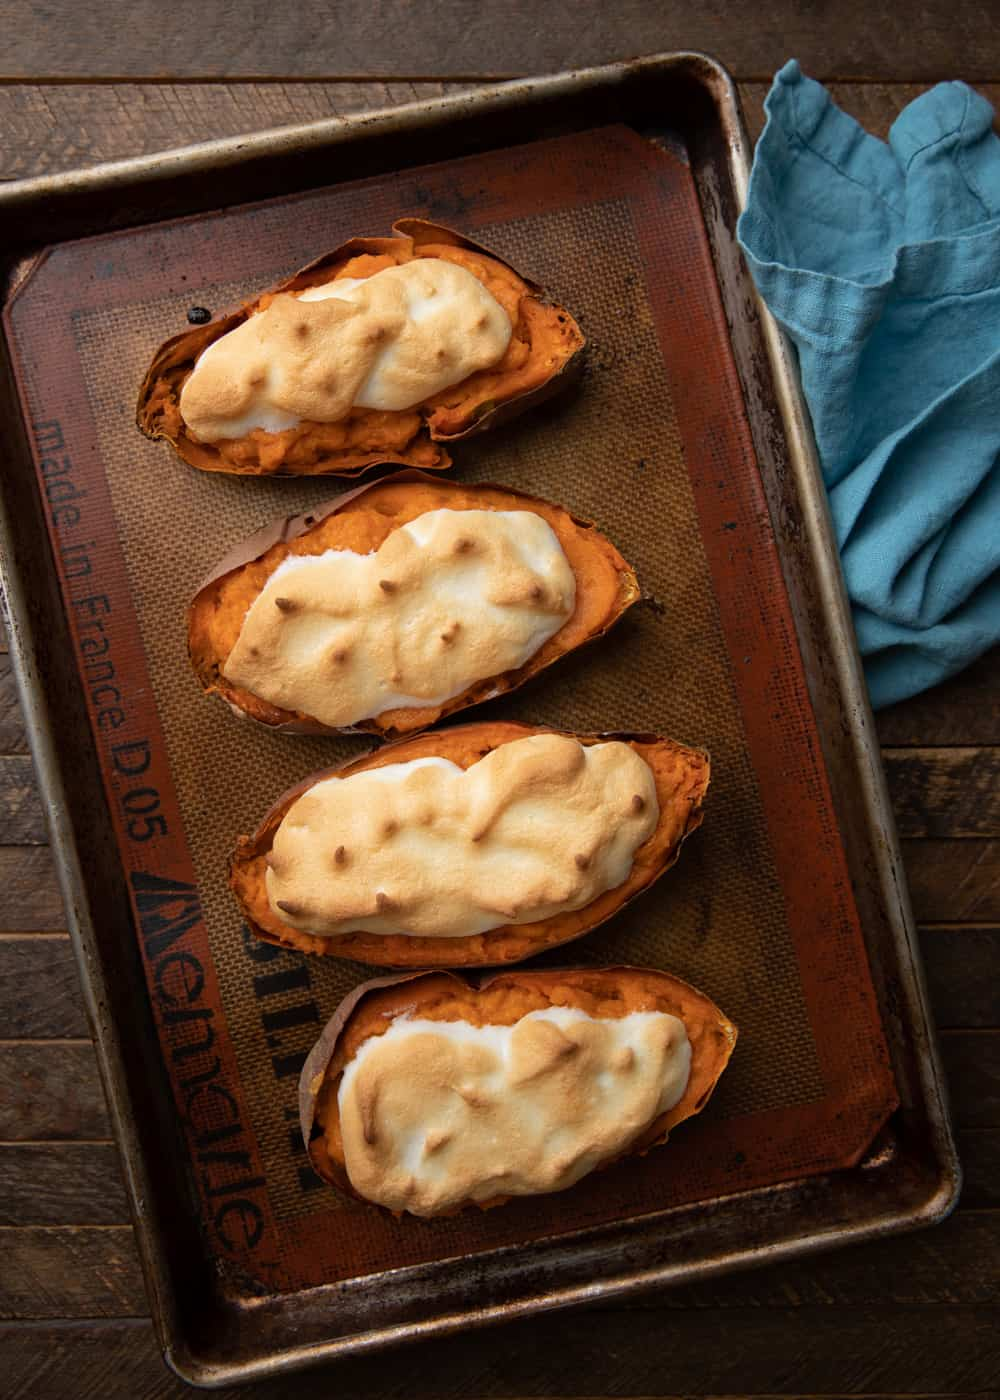 baked sweet potatoes topped with meringue